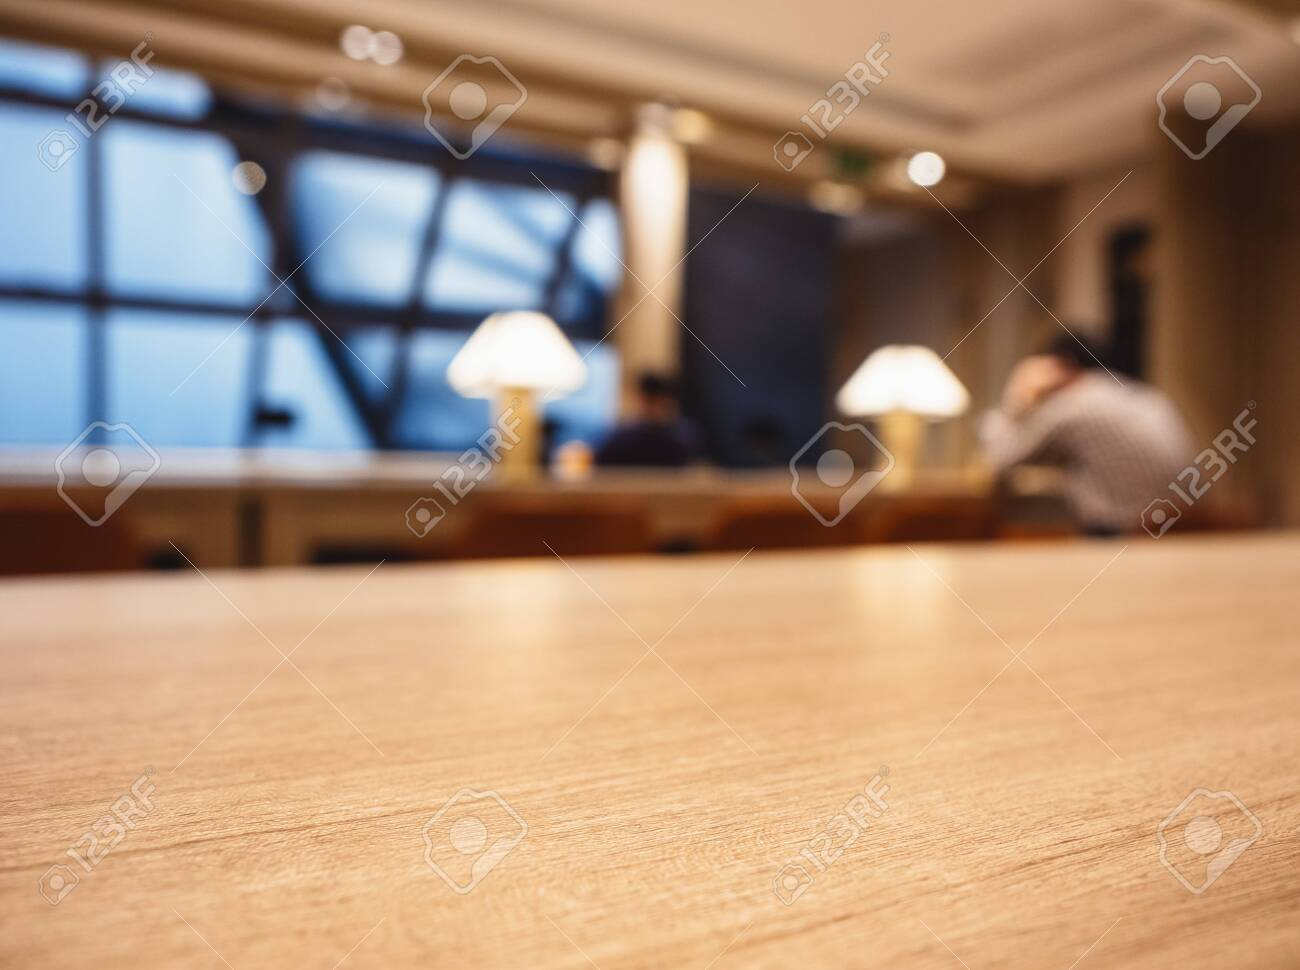 Table top Counter Blur Bar cafe Lounge Interior background - 126192660